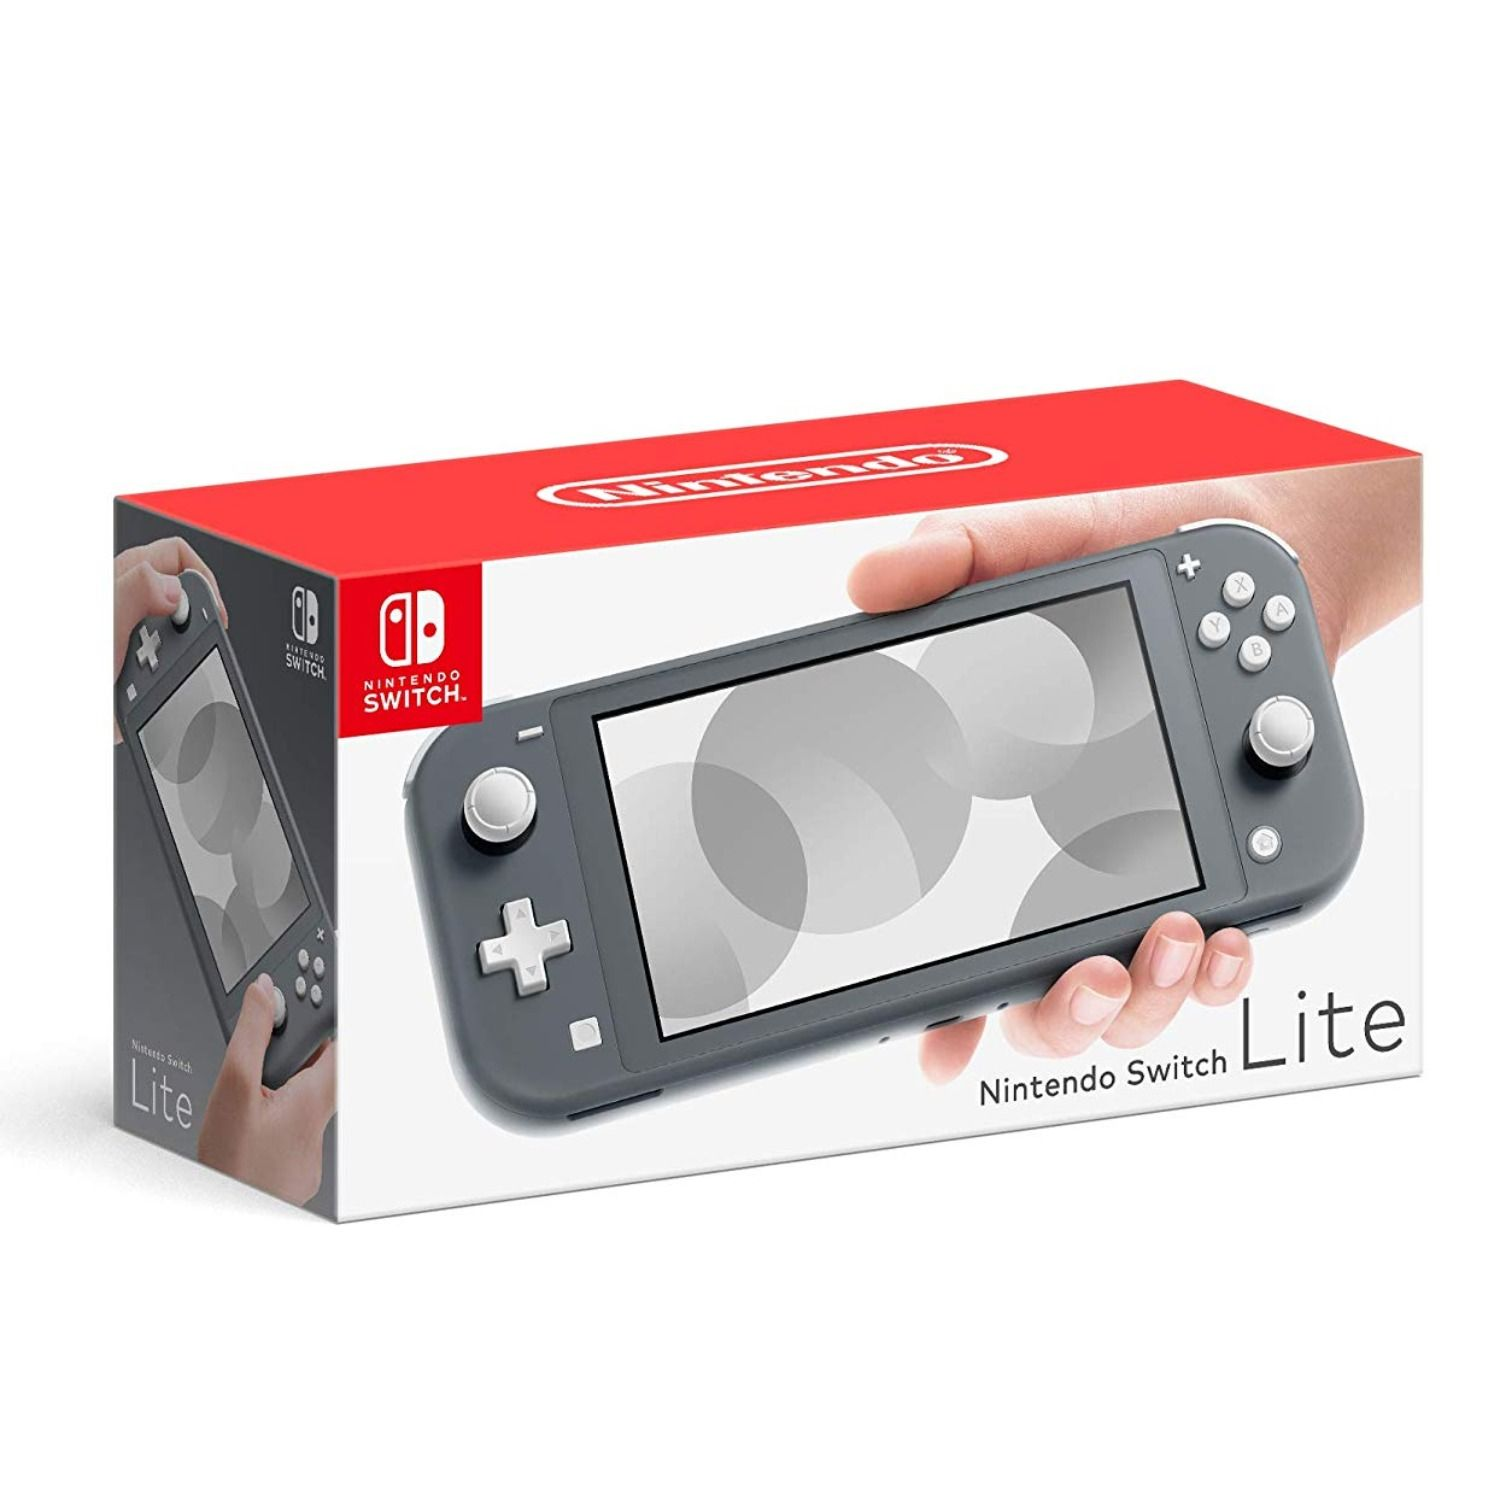 Introducing Nintendo Switch Lite A New Version Of The Nintendo Switch System That S Optimiz With Images Nintendo Switch System Nintendo Switch Nintendo Switch Accessories